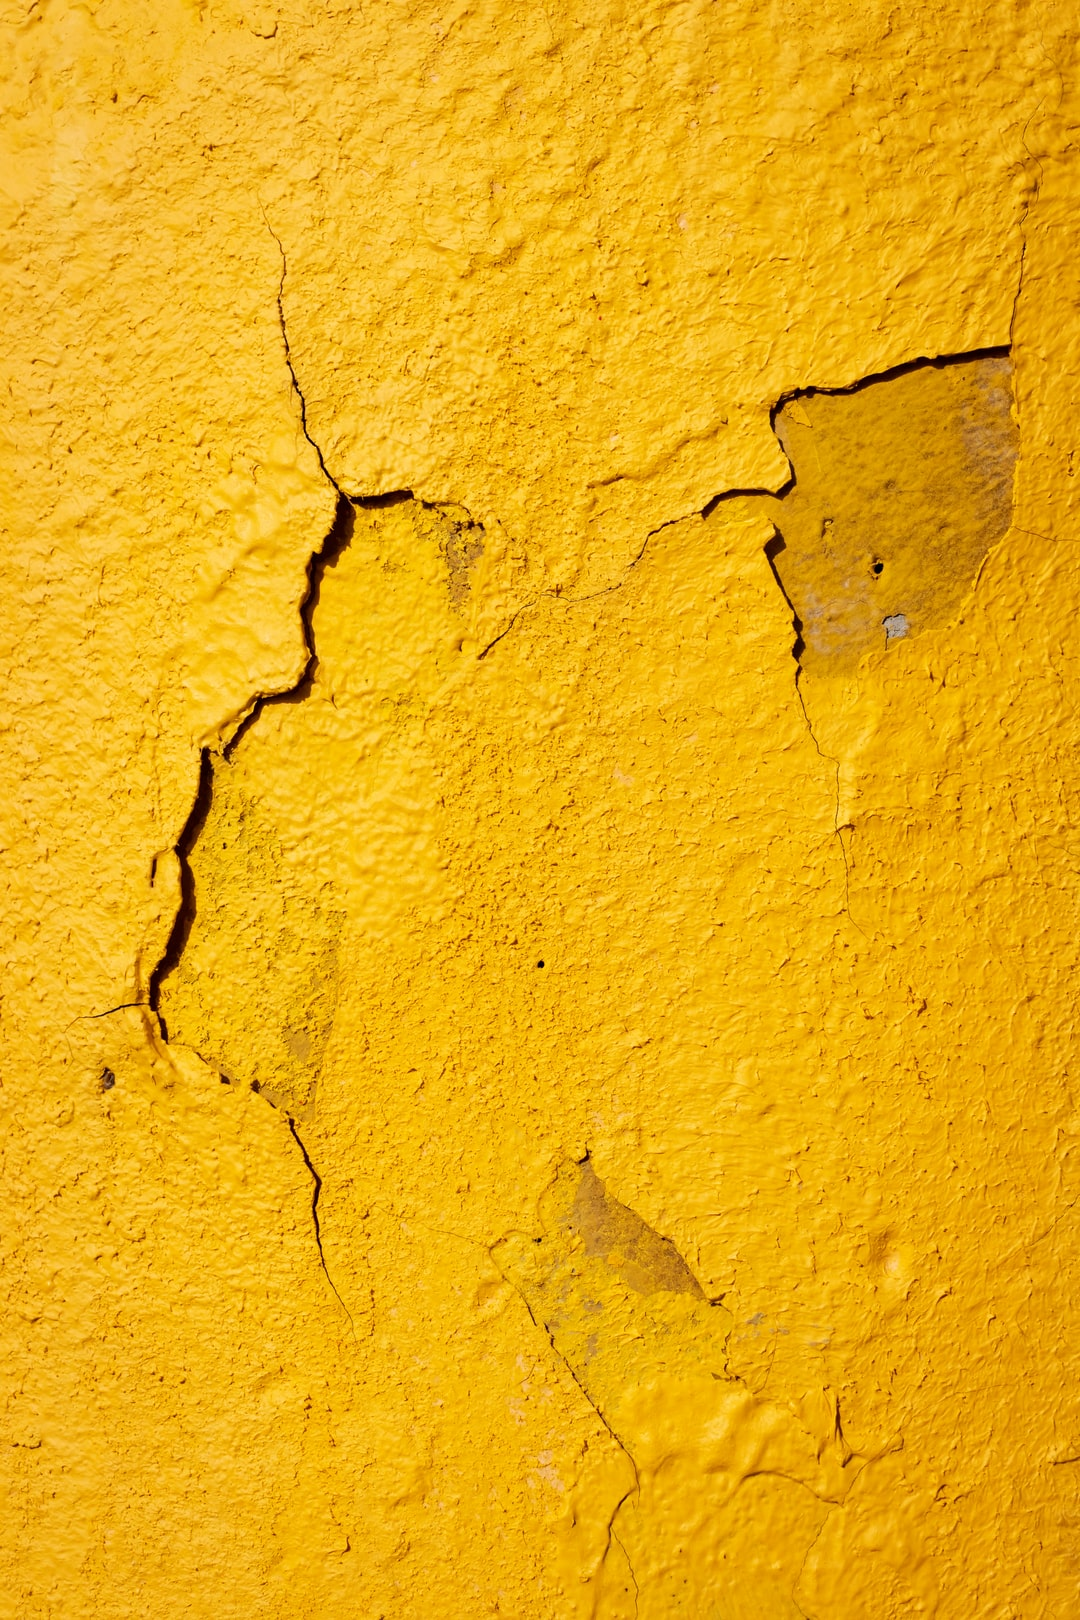 yellow textured cracked paint on wall